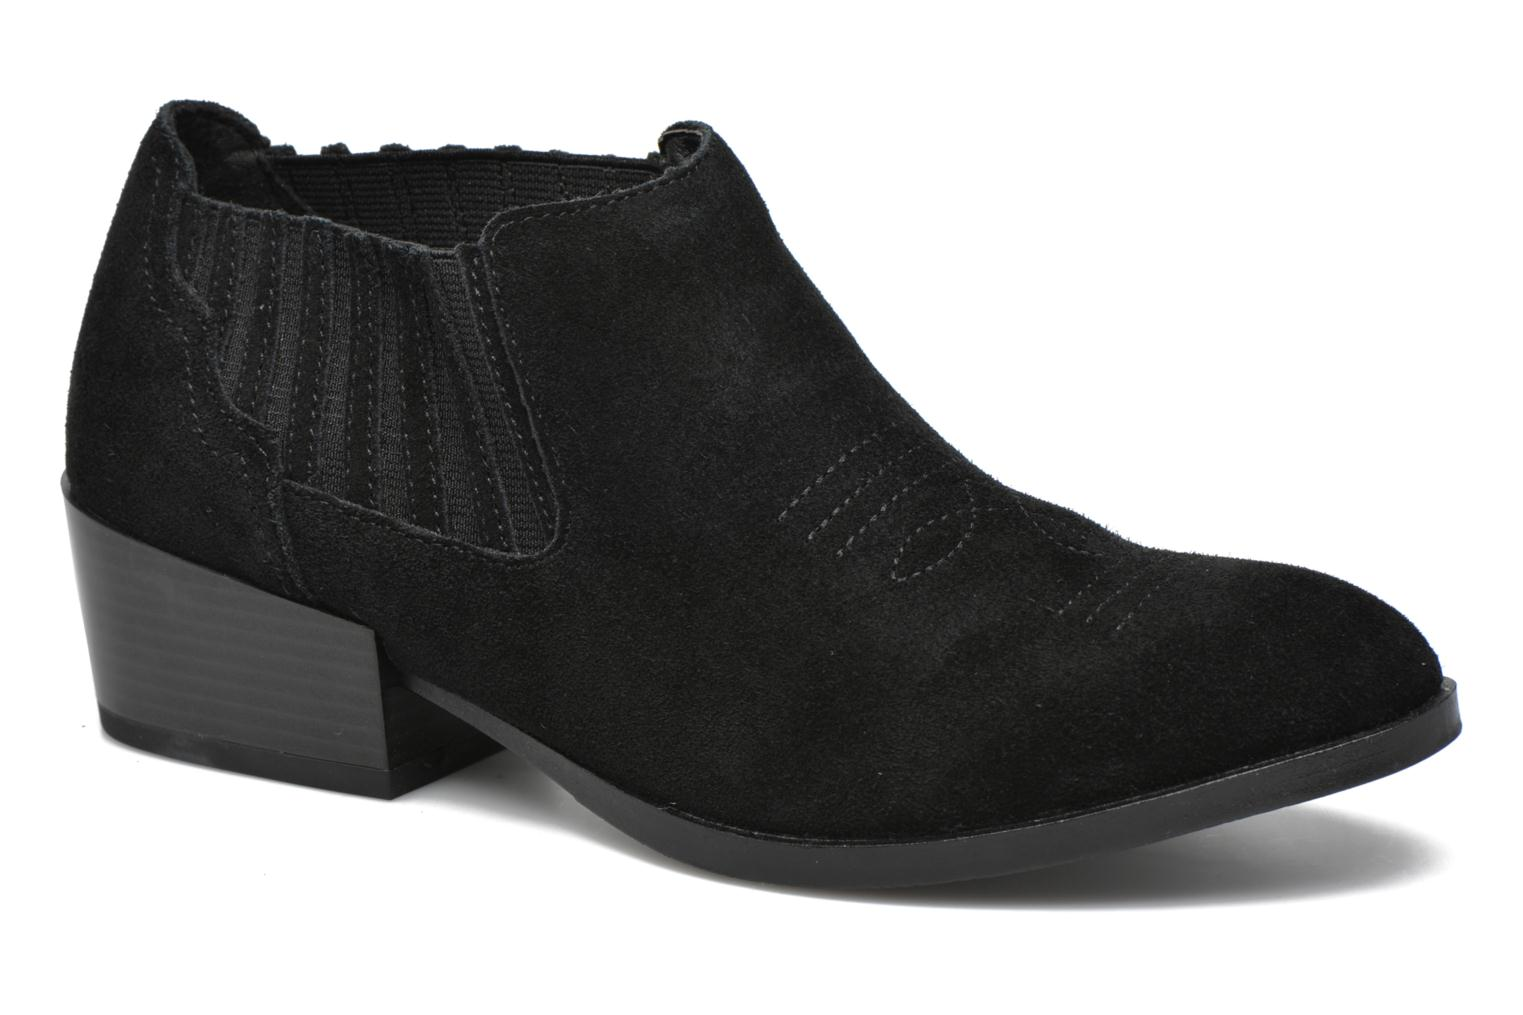 Western Leather Low Boot Black